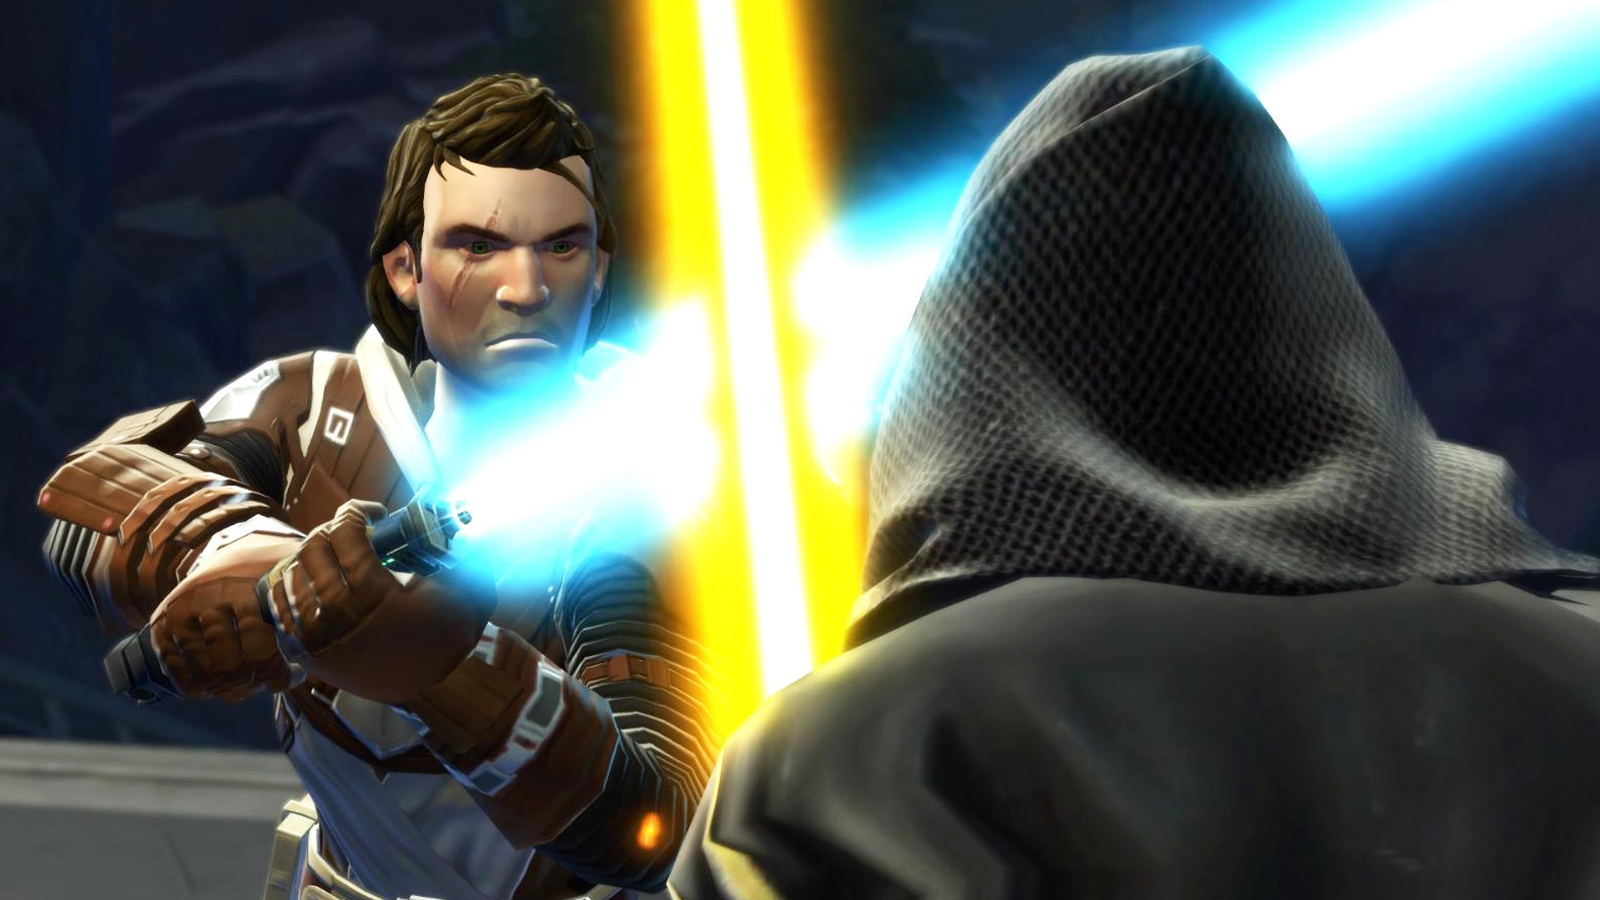 The 9 Best Star Wars Video Games By Brandon C Kesselly Pubsquare Media